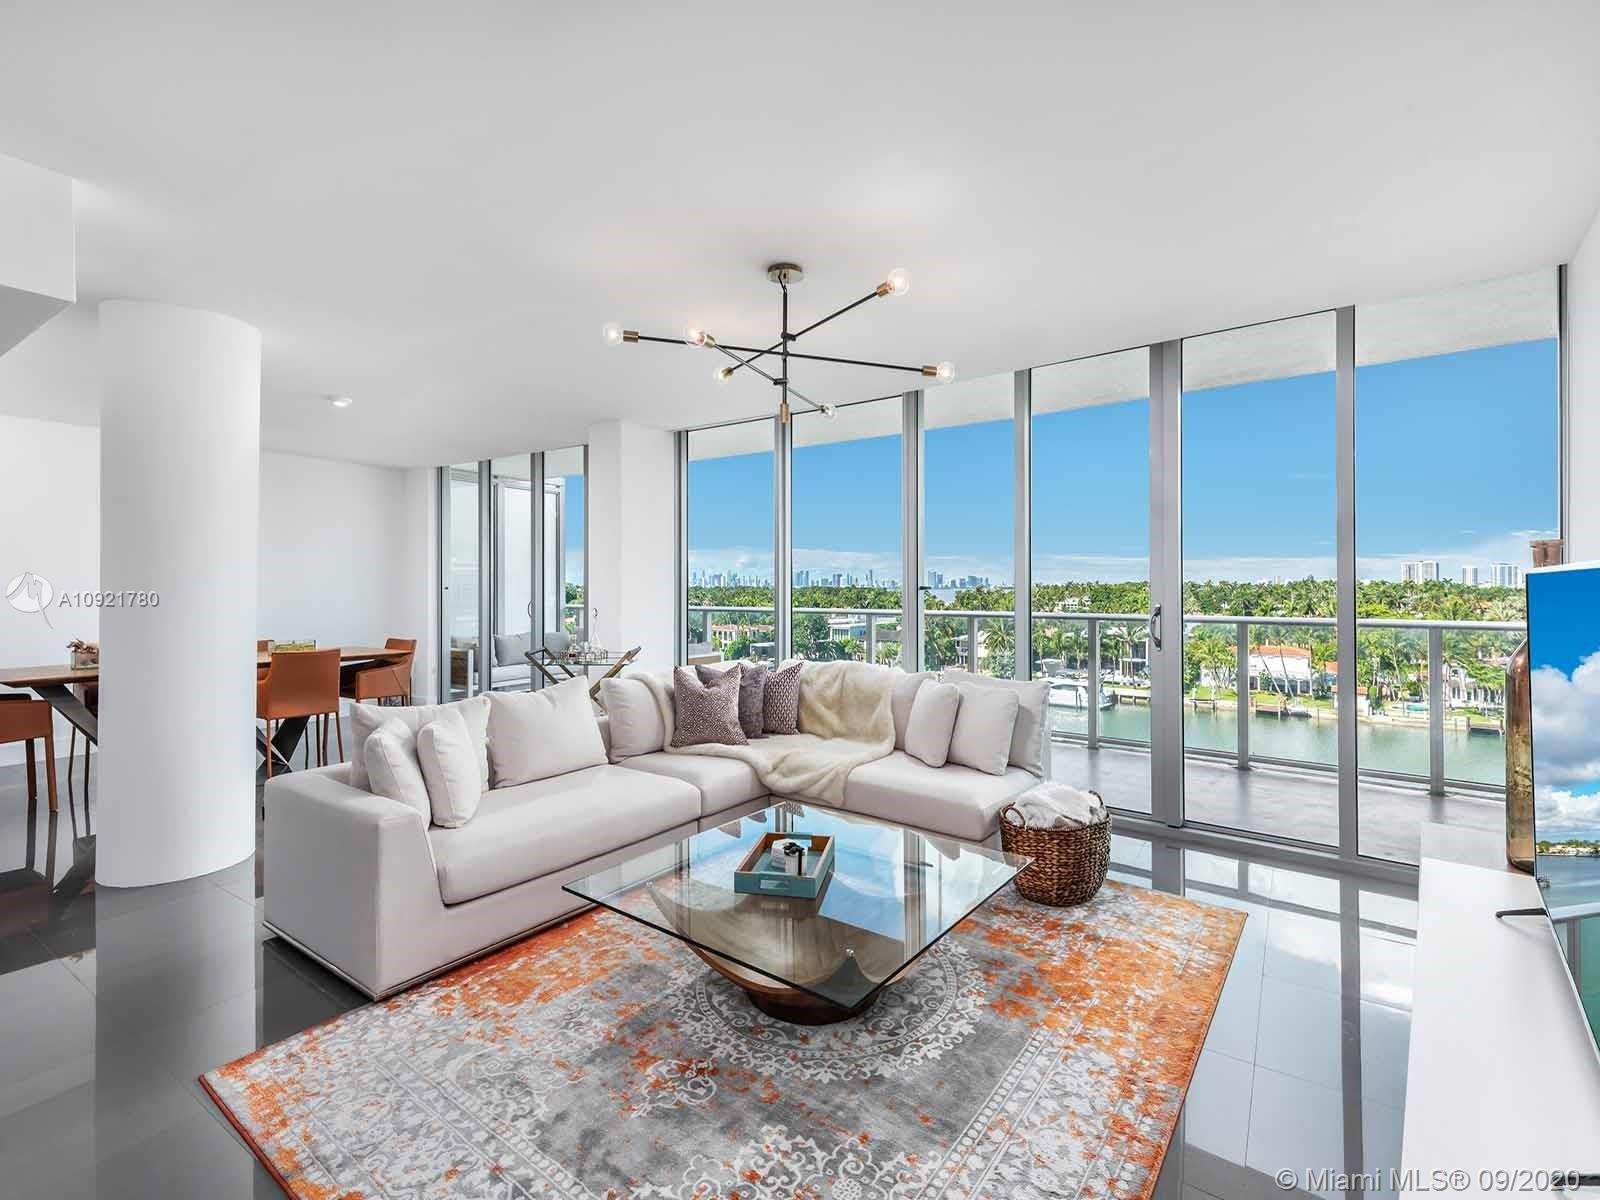 This serene penthouse, atop the recently completed Peloro Miami Beach, is an intimate home in North